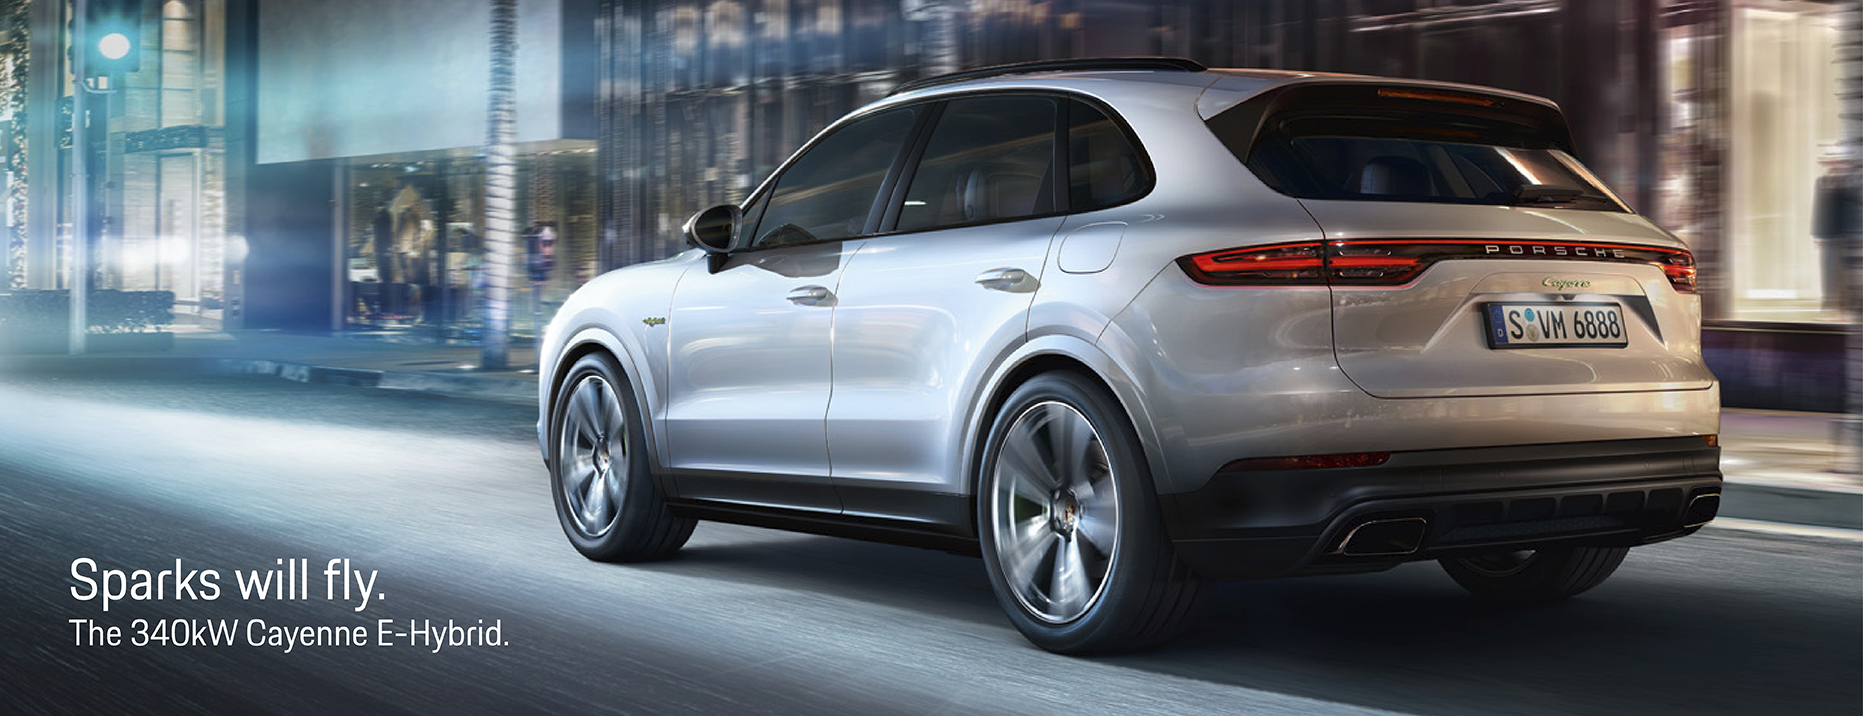 New Cayenne now available as a plug-in hybrid.